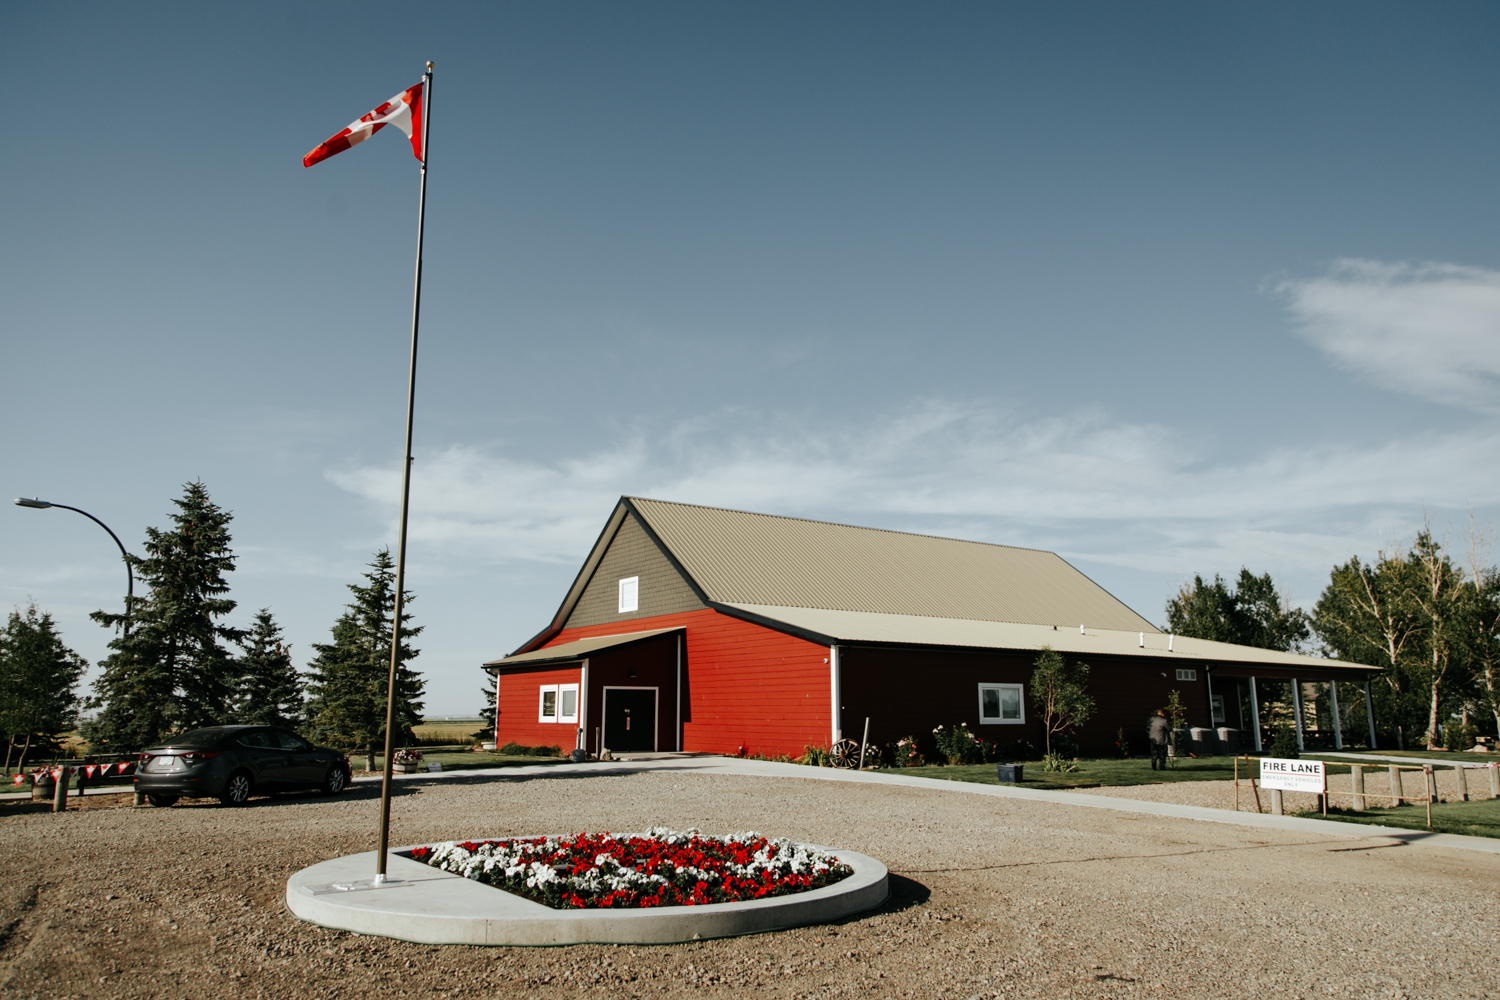 lethbridge-photographer-readymade-community-centre-reception-coaldale-bailey-joel-picture-image-photo-103.jpg